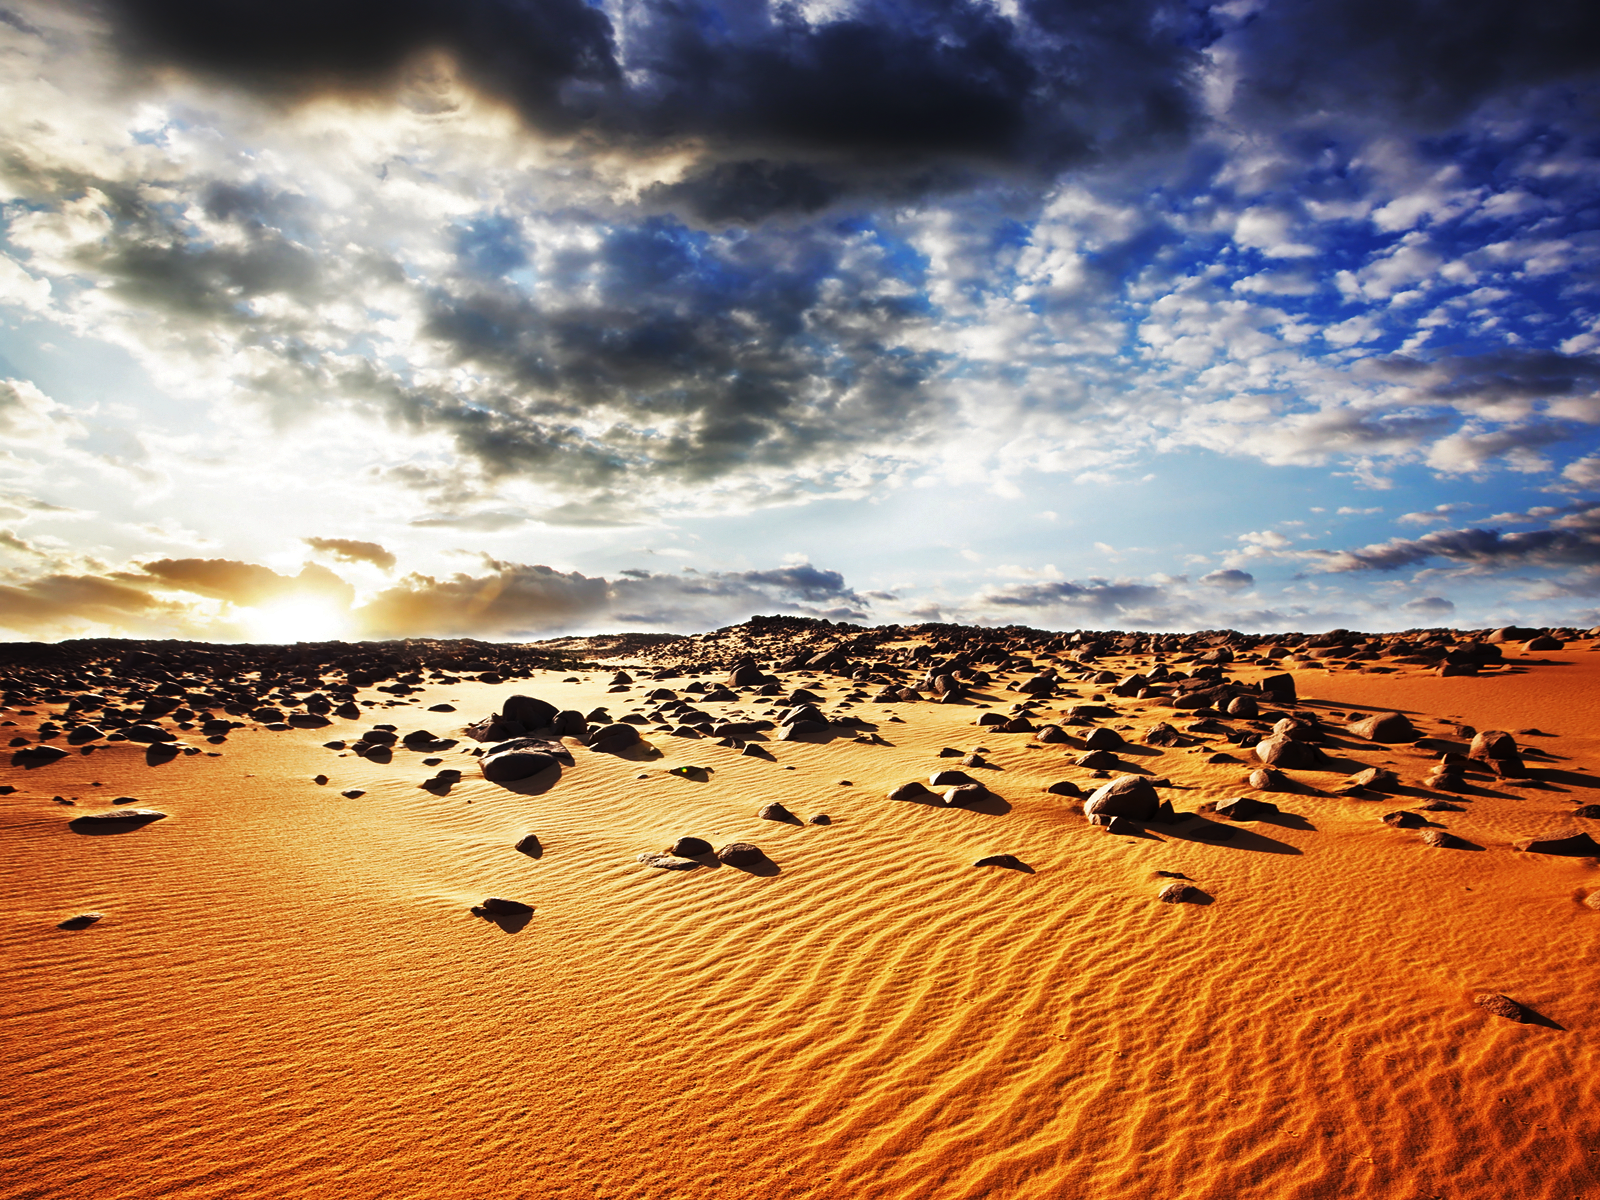 Hd Wallpapers Images: Desert HD Wallpapers